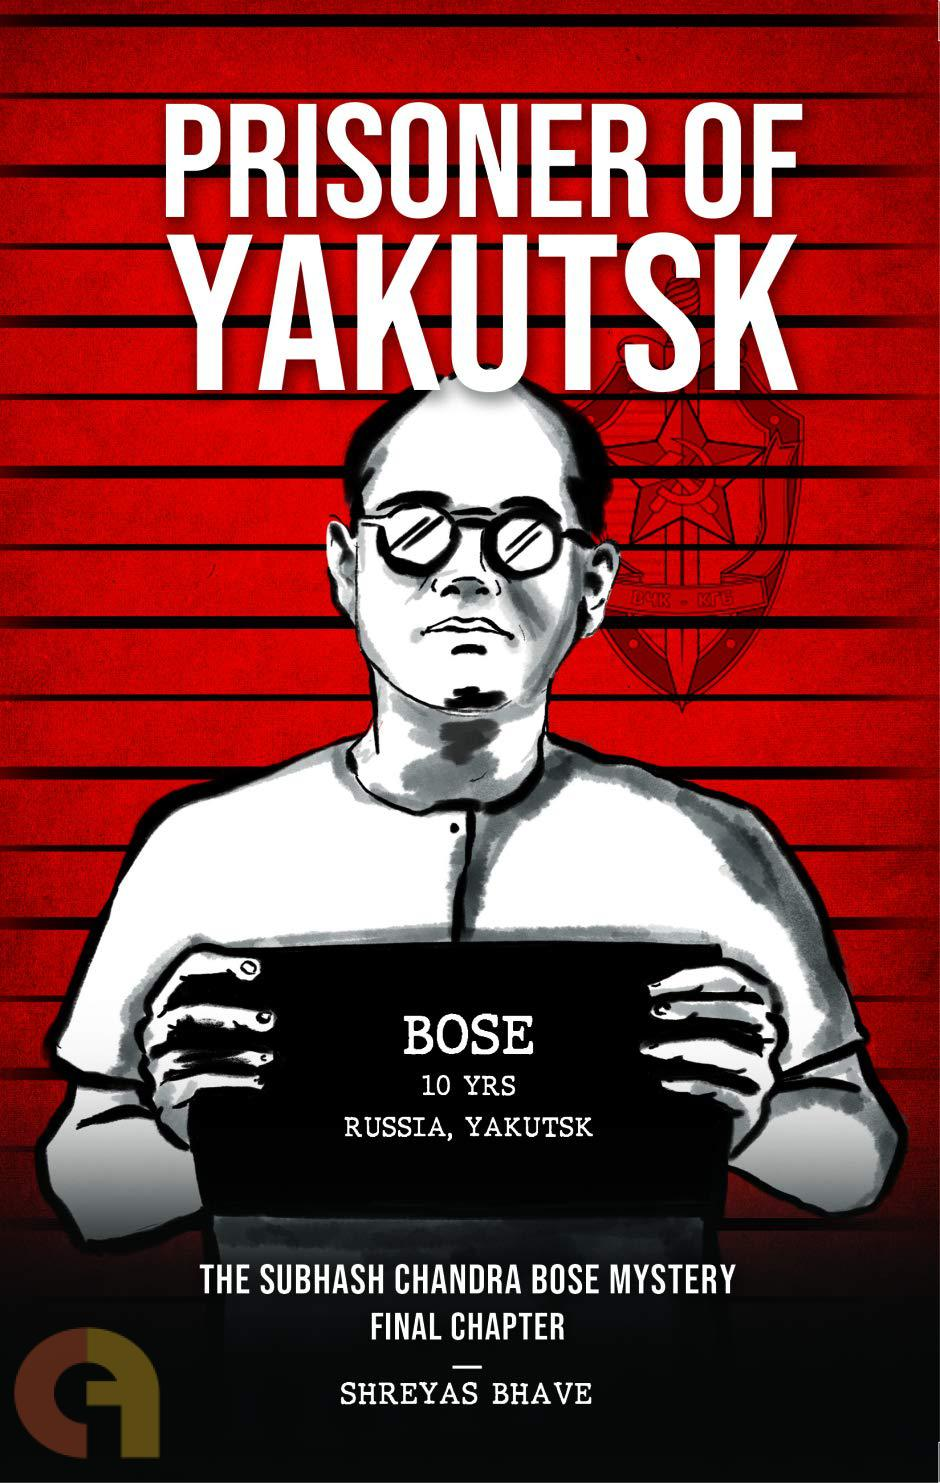 Prisoner of Yakutsk